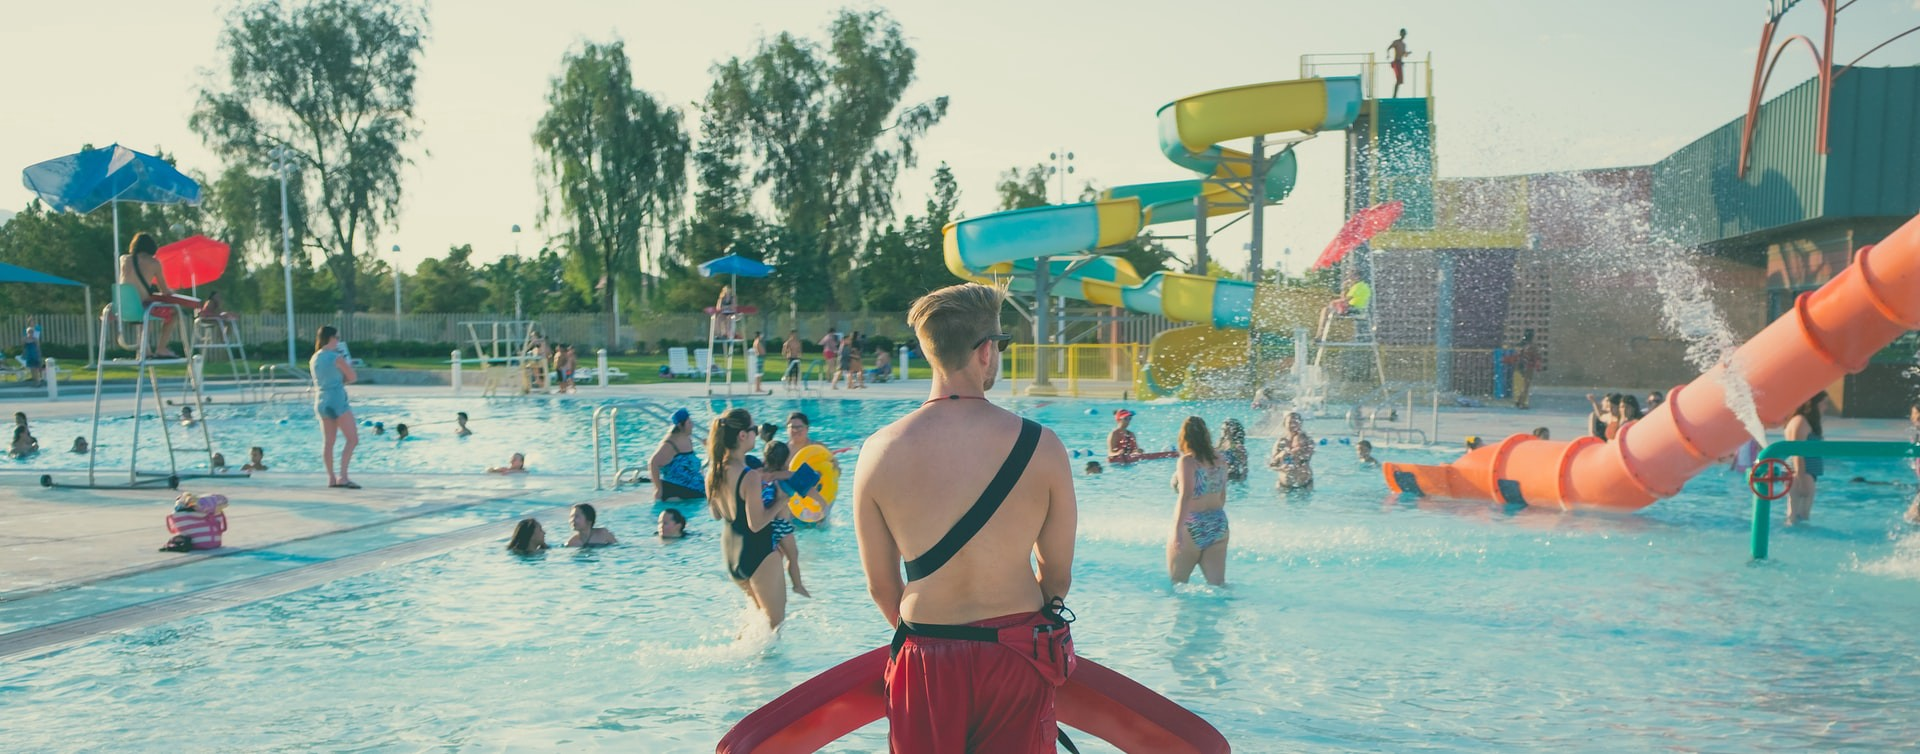 Lifeguard in red shorts stands watching swimmers in a public outdoor pool.